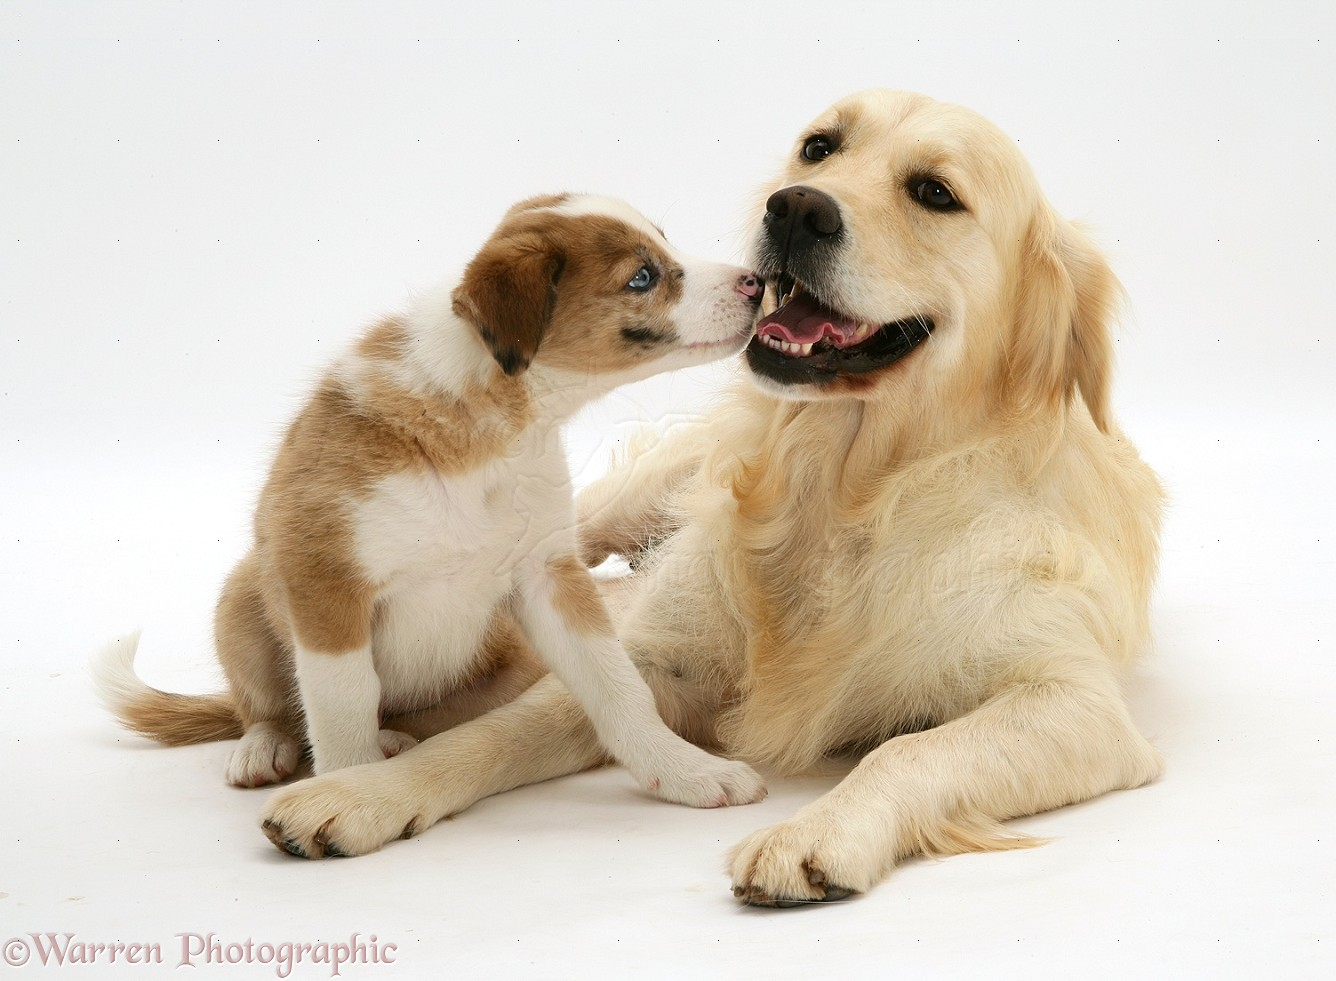 Dogs Golden Retriever And Border Collie Pup Photo Wp25160